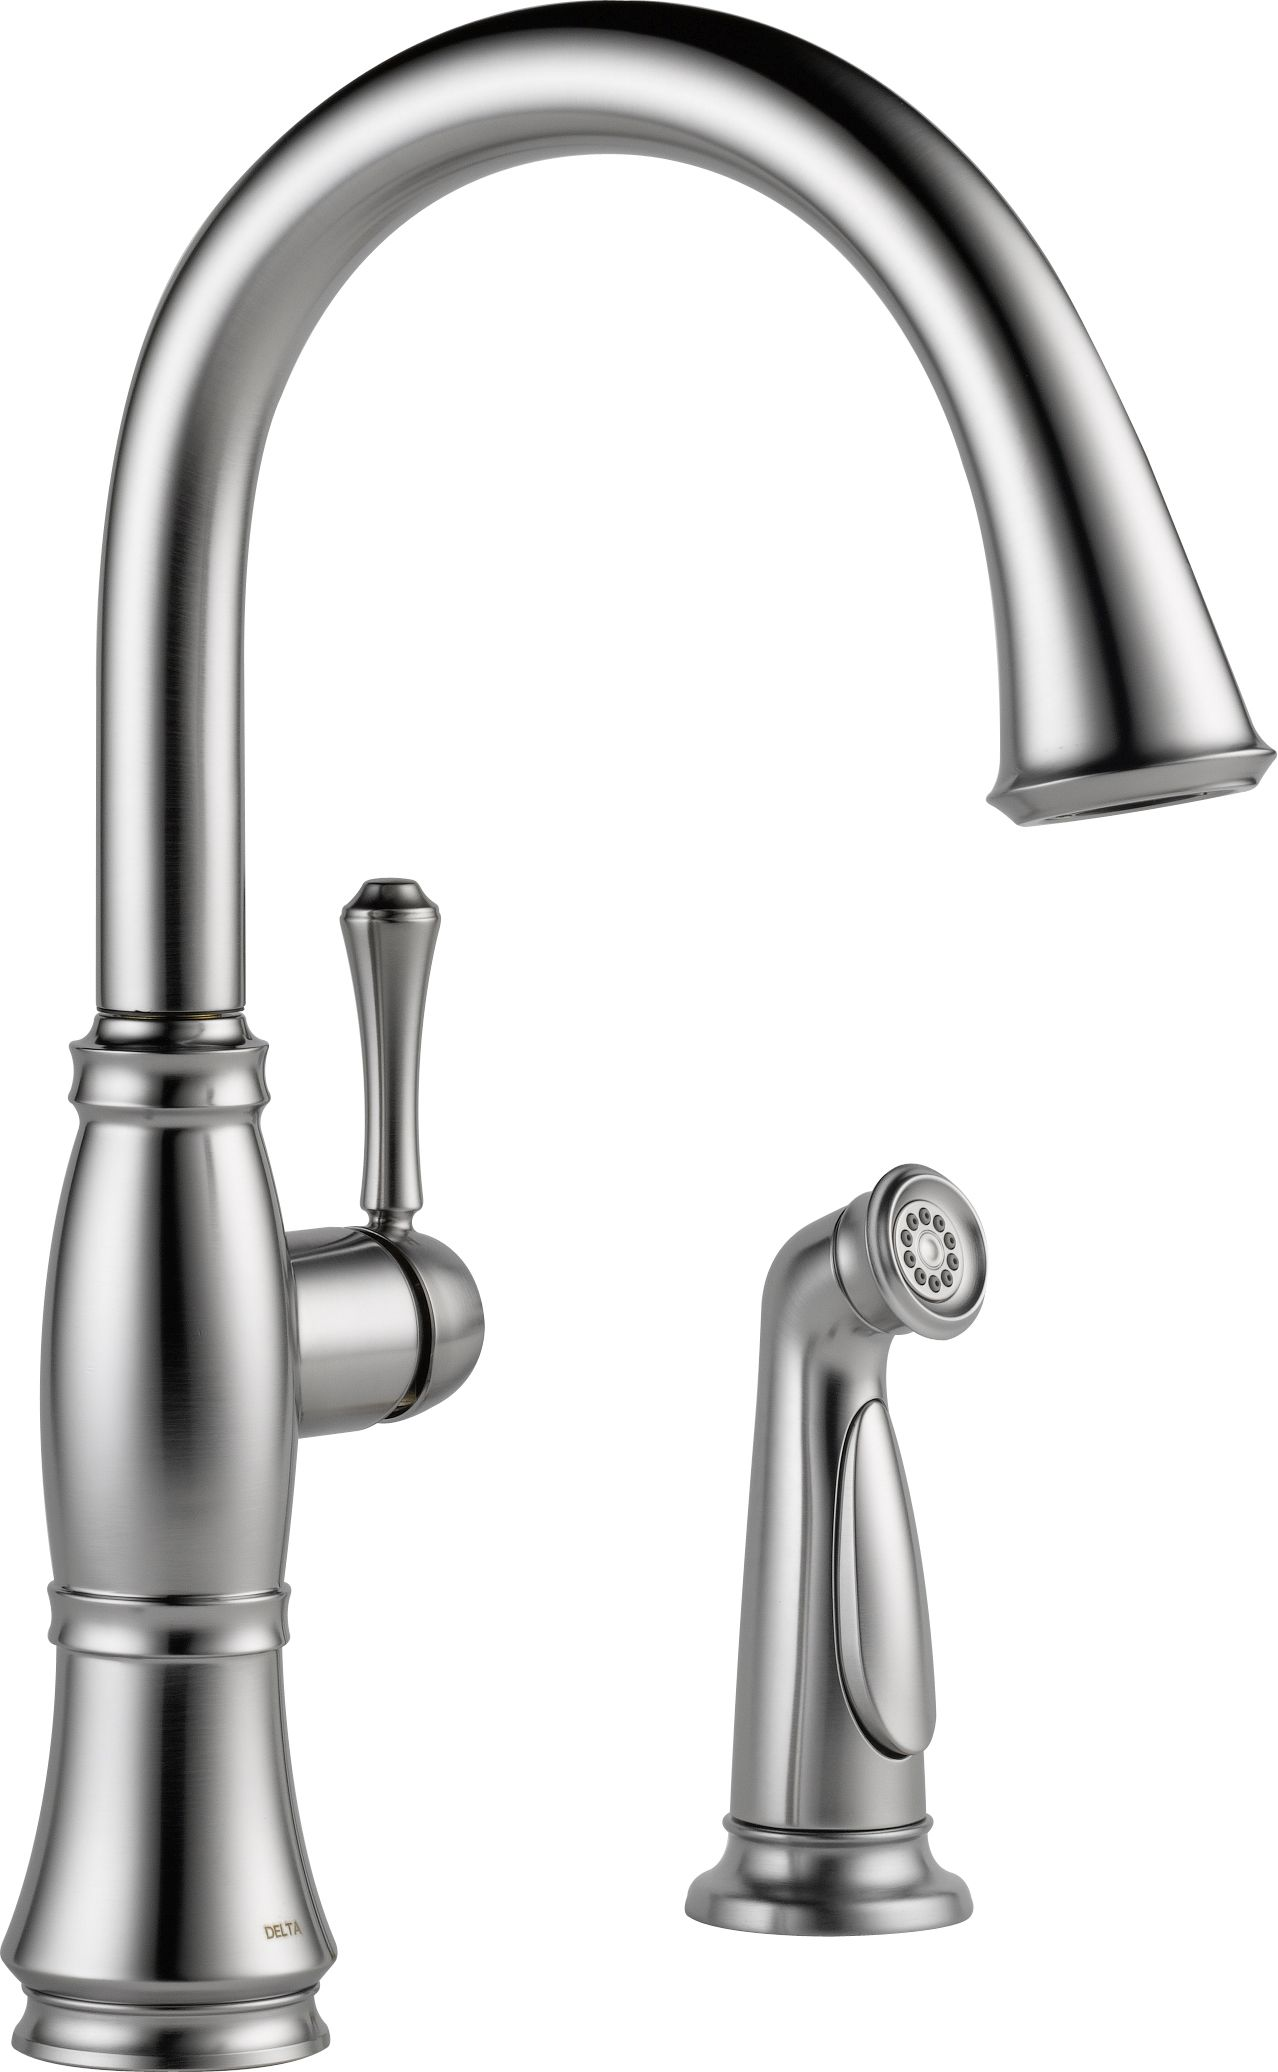 Delta 4297 AR DST Arctic Stainless Cassidy Kitchen Faucet With Side Spray    Includes Lifetime Warranty   Faucet.com